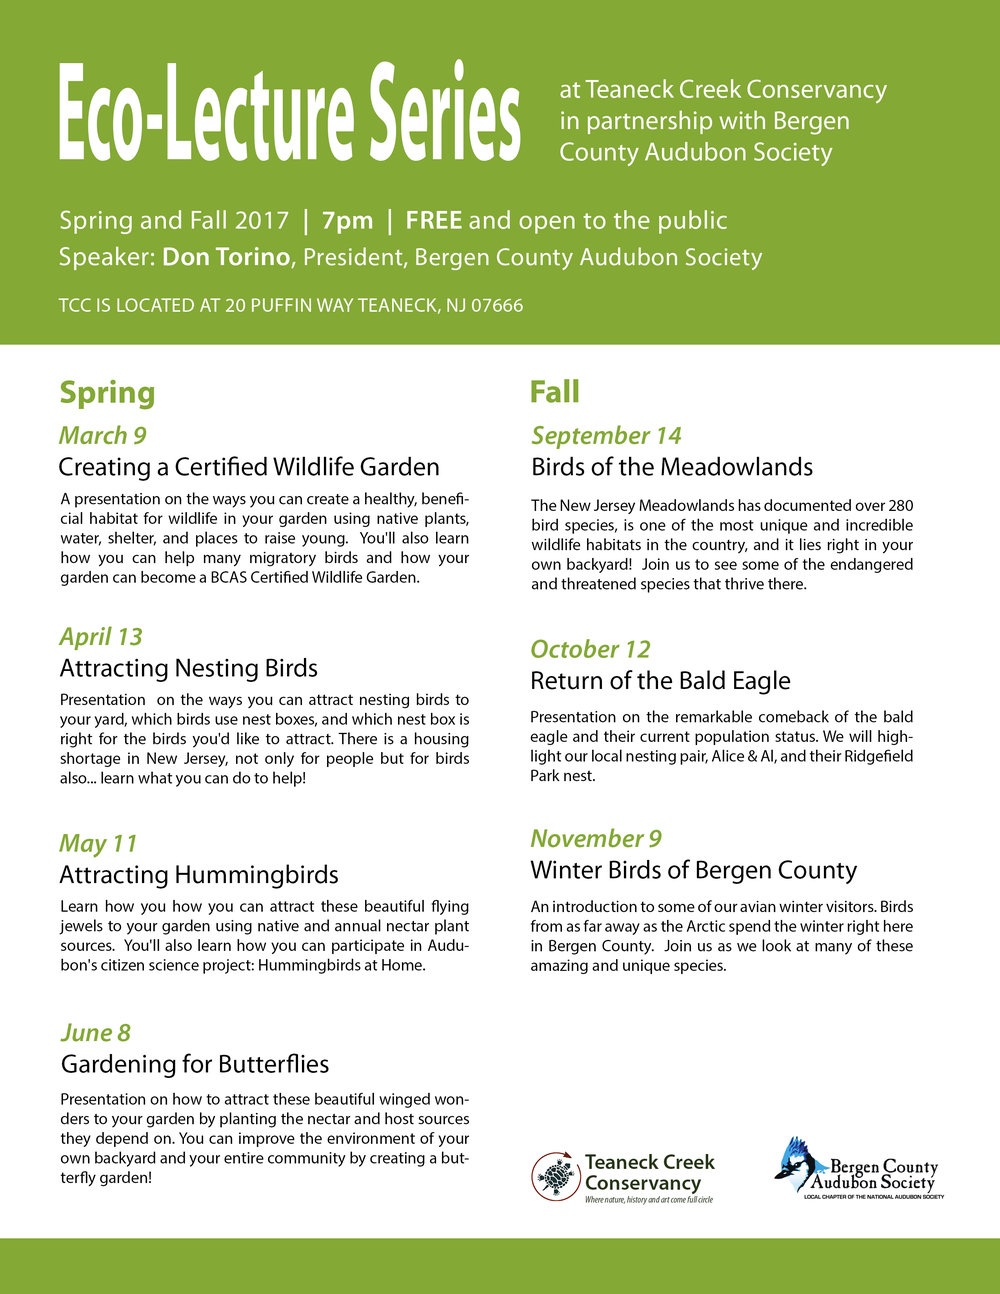 Eco Lecture Series Flyer (1).jpg